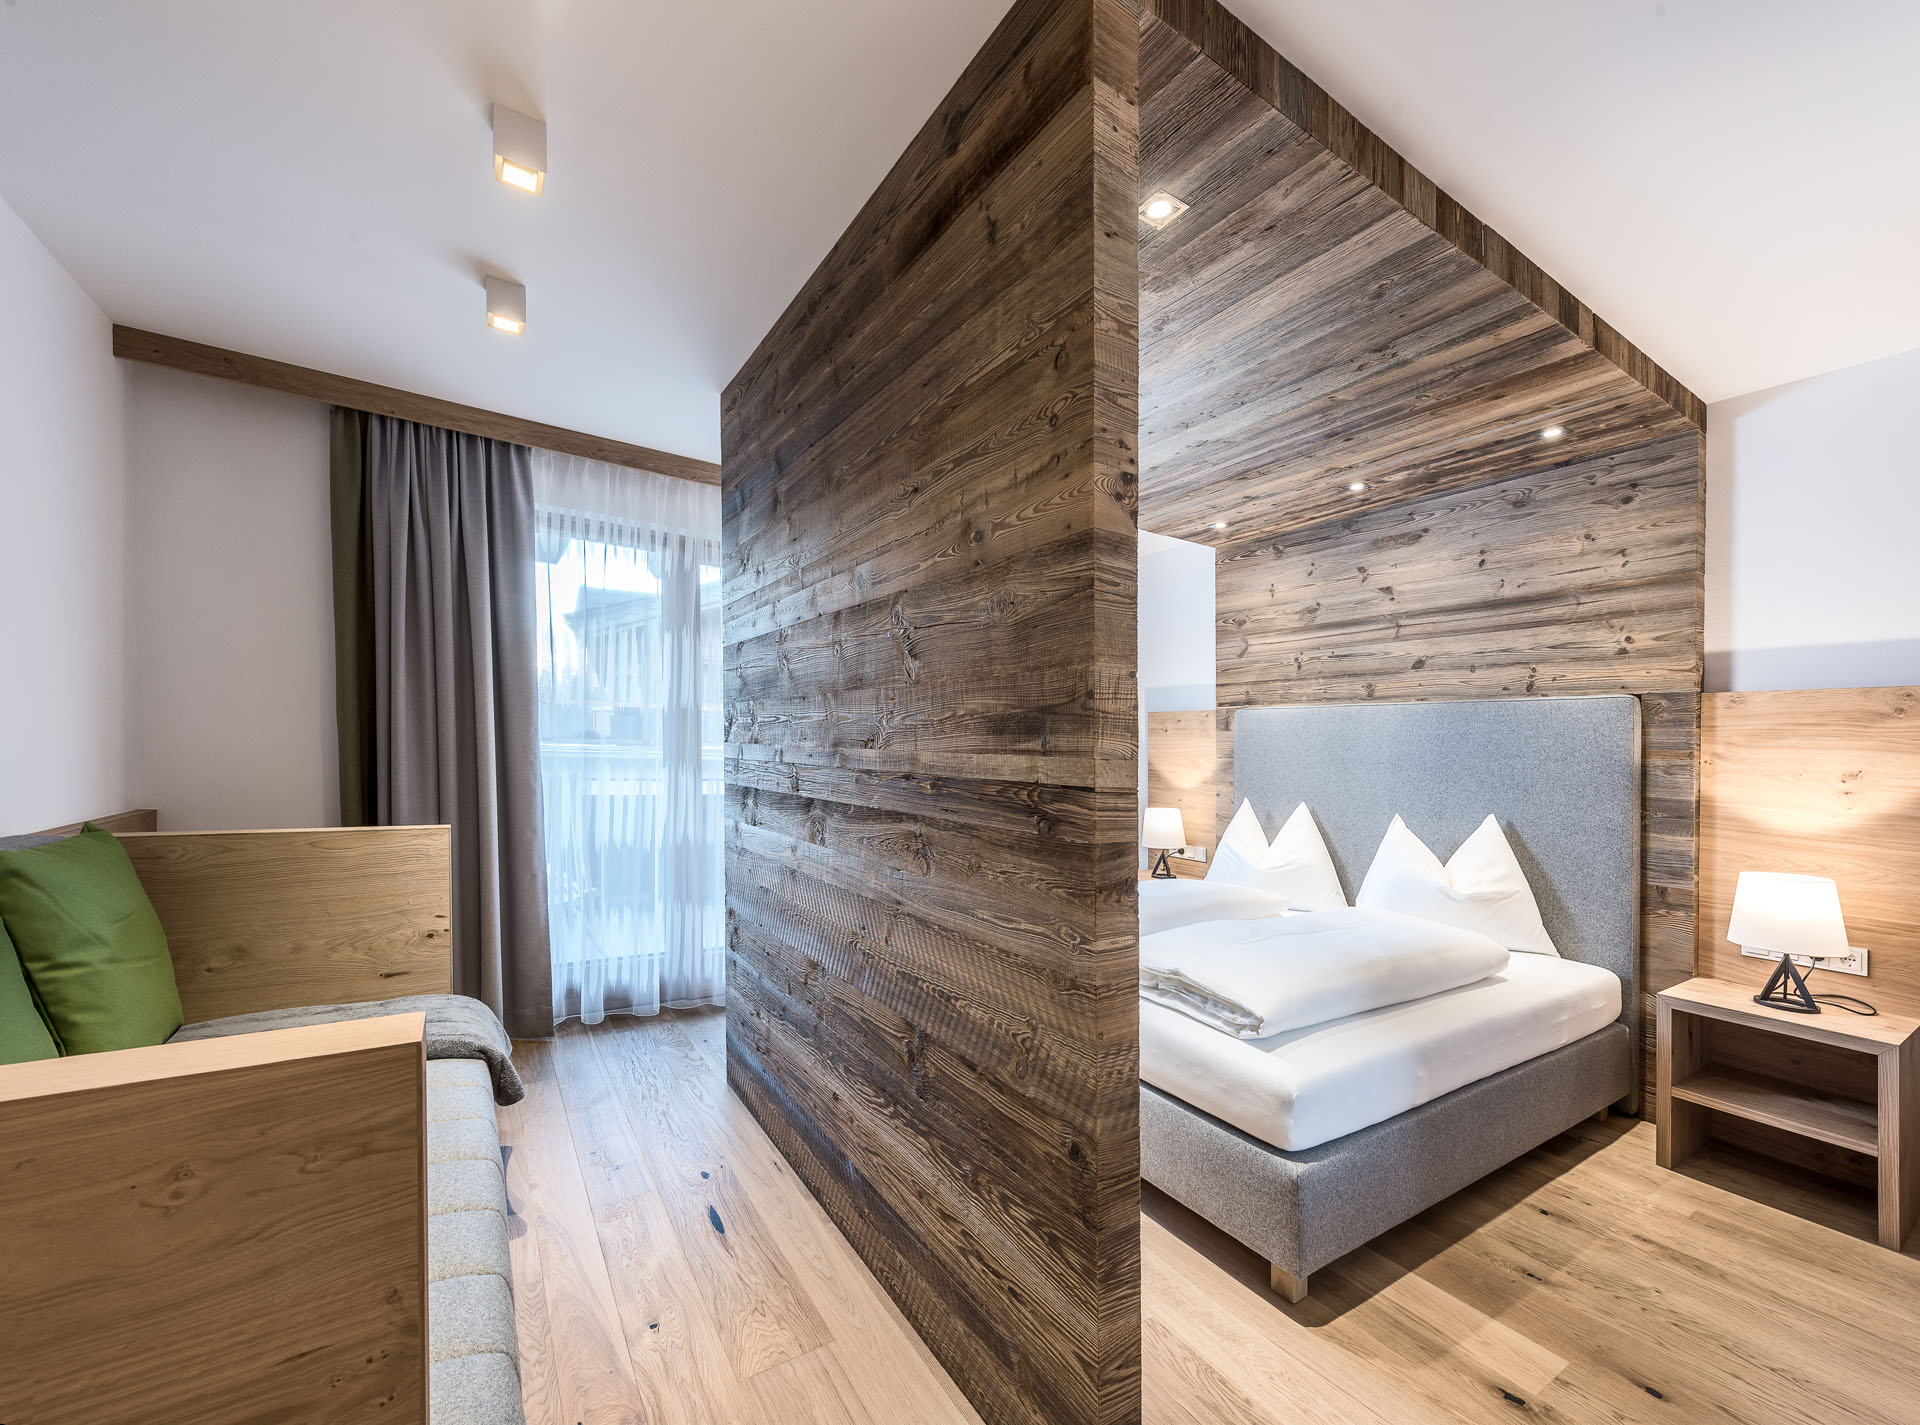 impressionen vom puradies hotel chalets in leogang. Black Bedroom Furniture Sets. Home Design Ideas